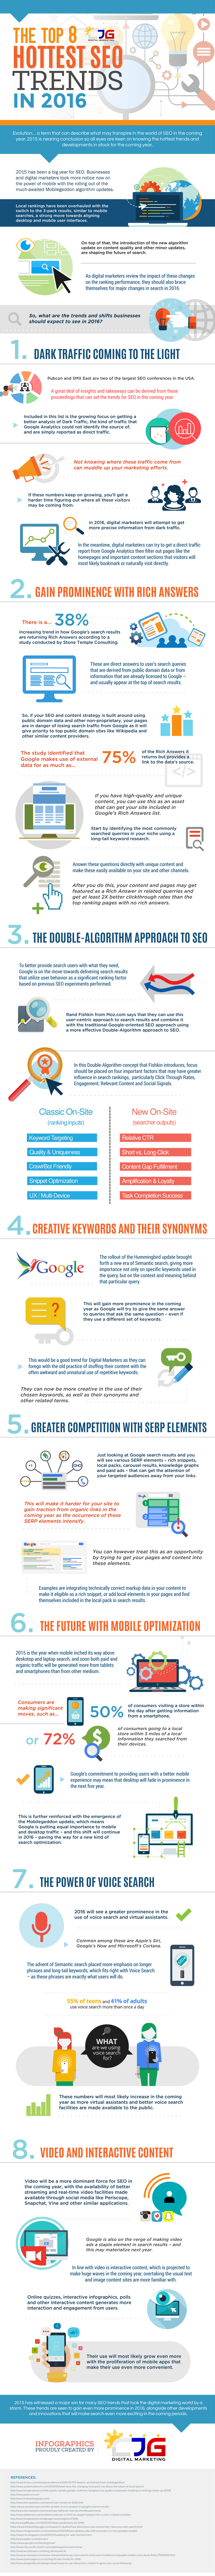 8 SEO Trends for 2016 How to Achieve Google Success Next Year #infographic according to CJG Digital Marketing